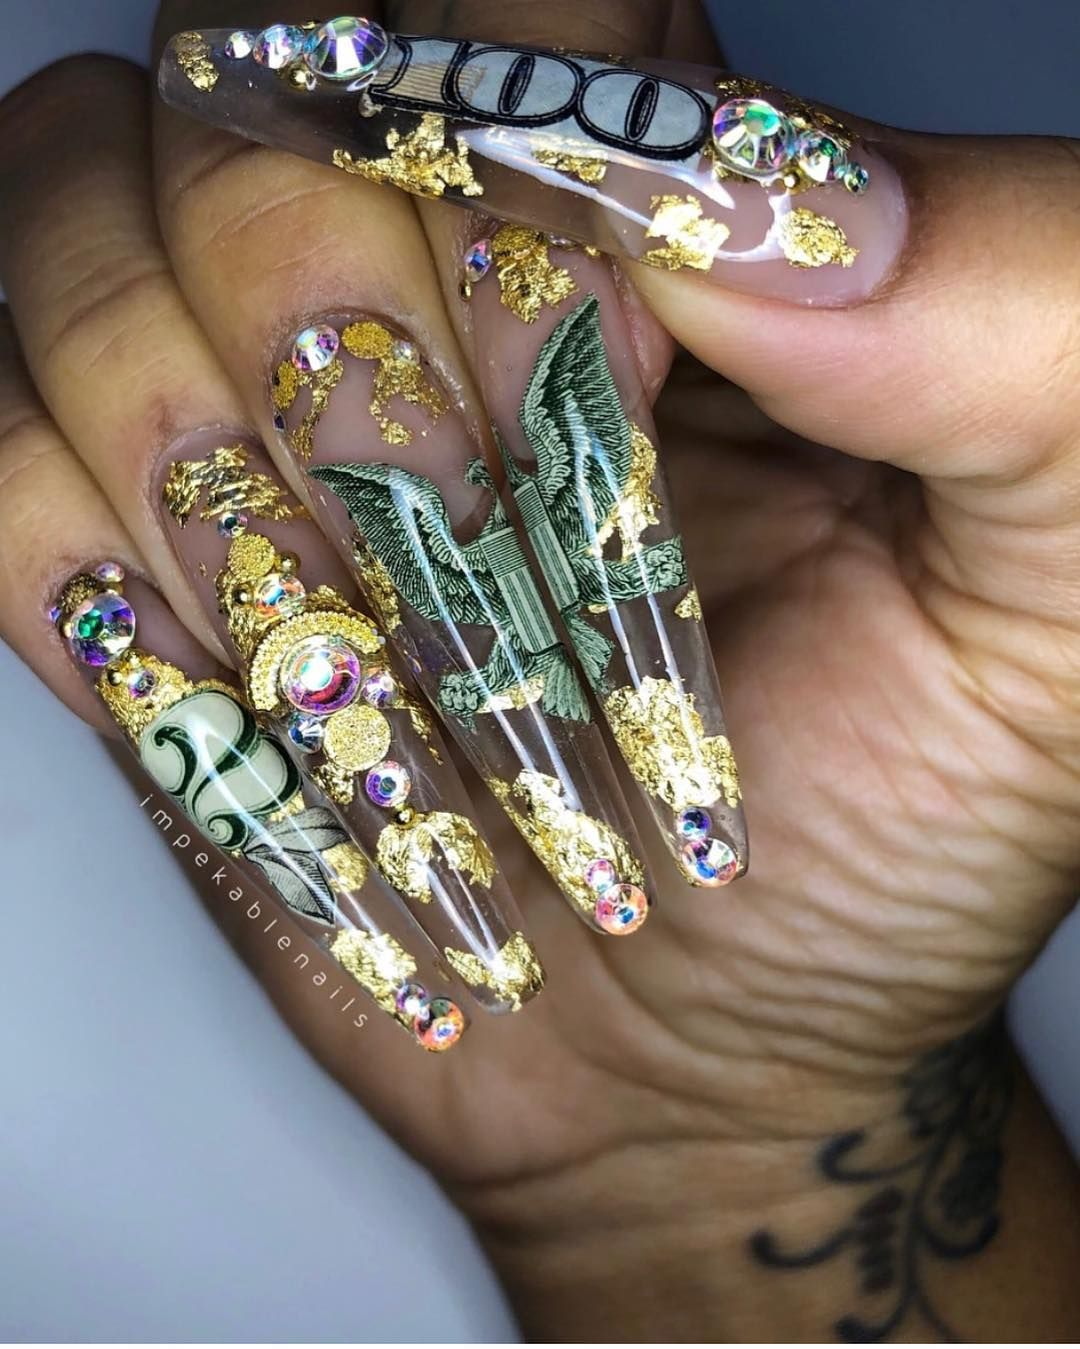 Extra Long Almond Nails With 100 Dollar Designs Money Designs On Almond Nails Long Almond Nails Ghetto Nails Long Acrylic Nails